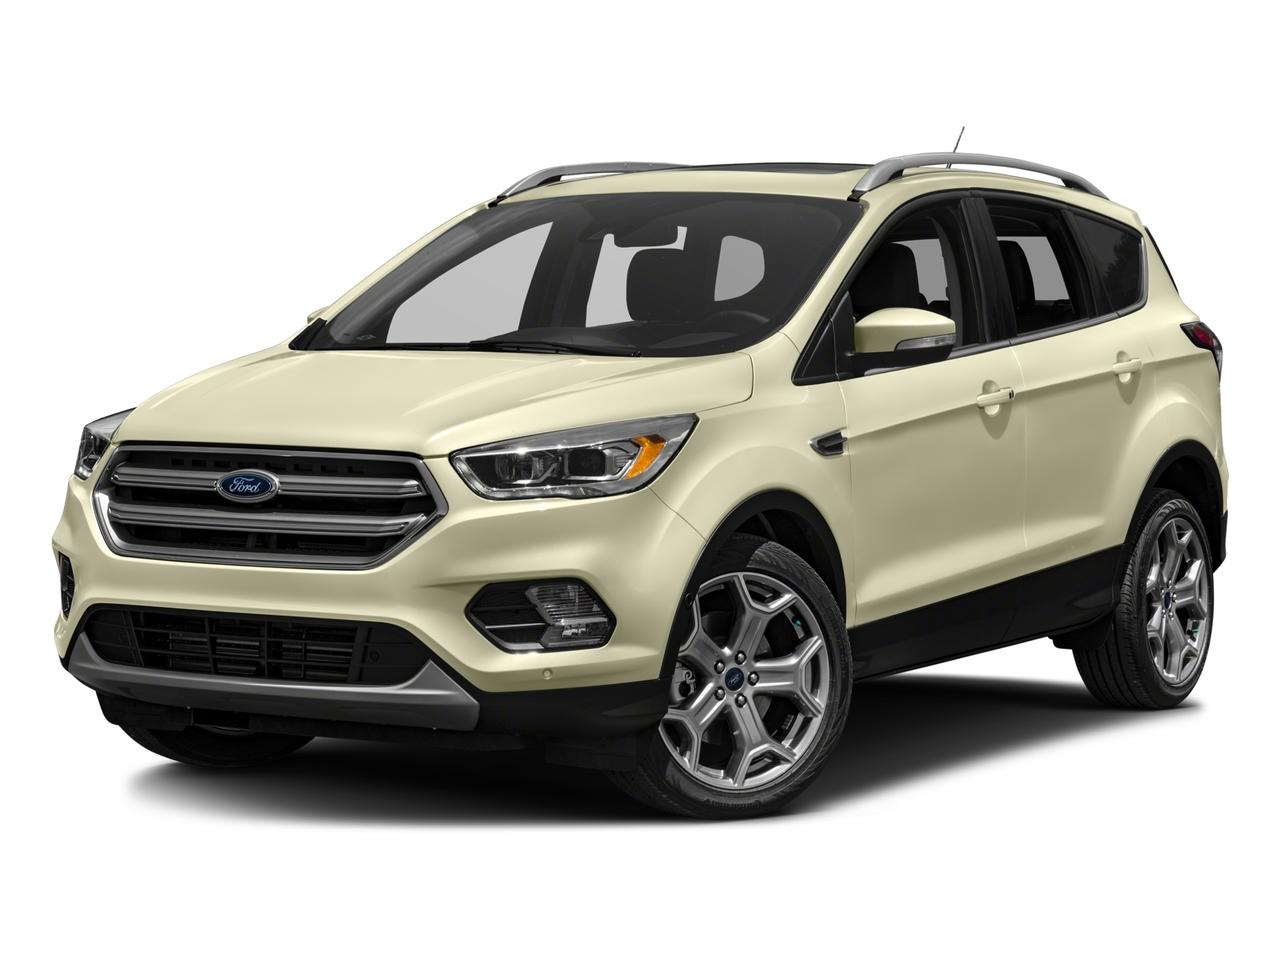 2017 Ford Escape Vehicle Photo in Peoria, IL 61615